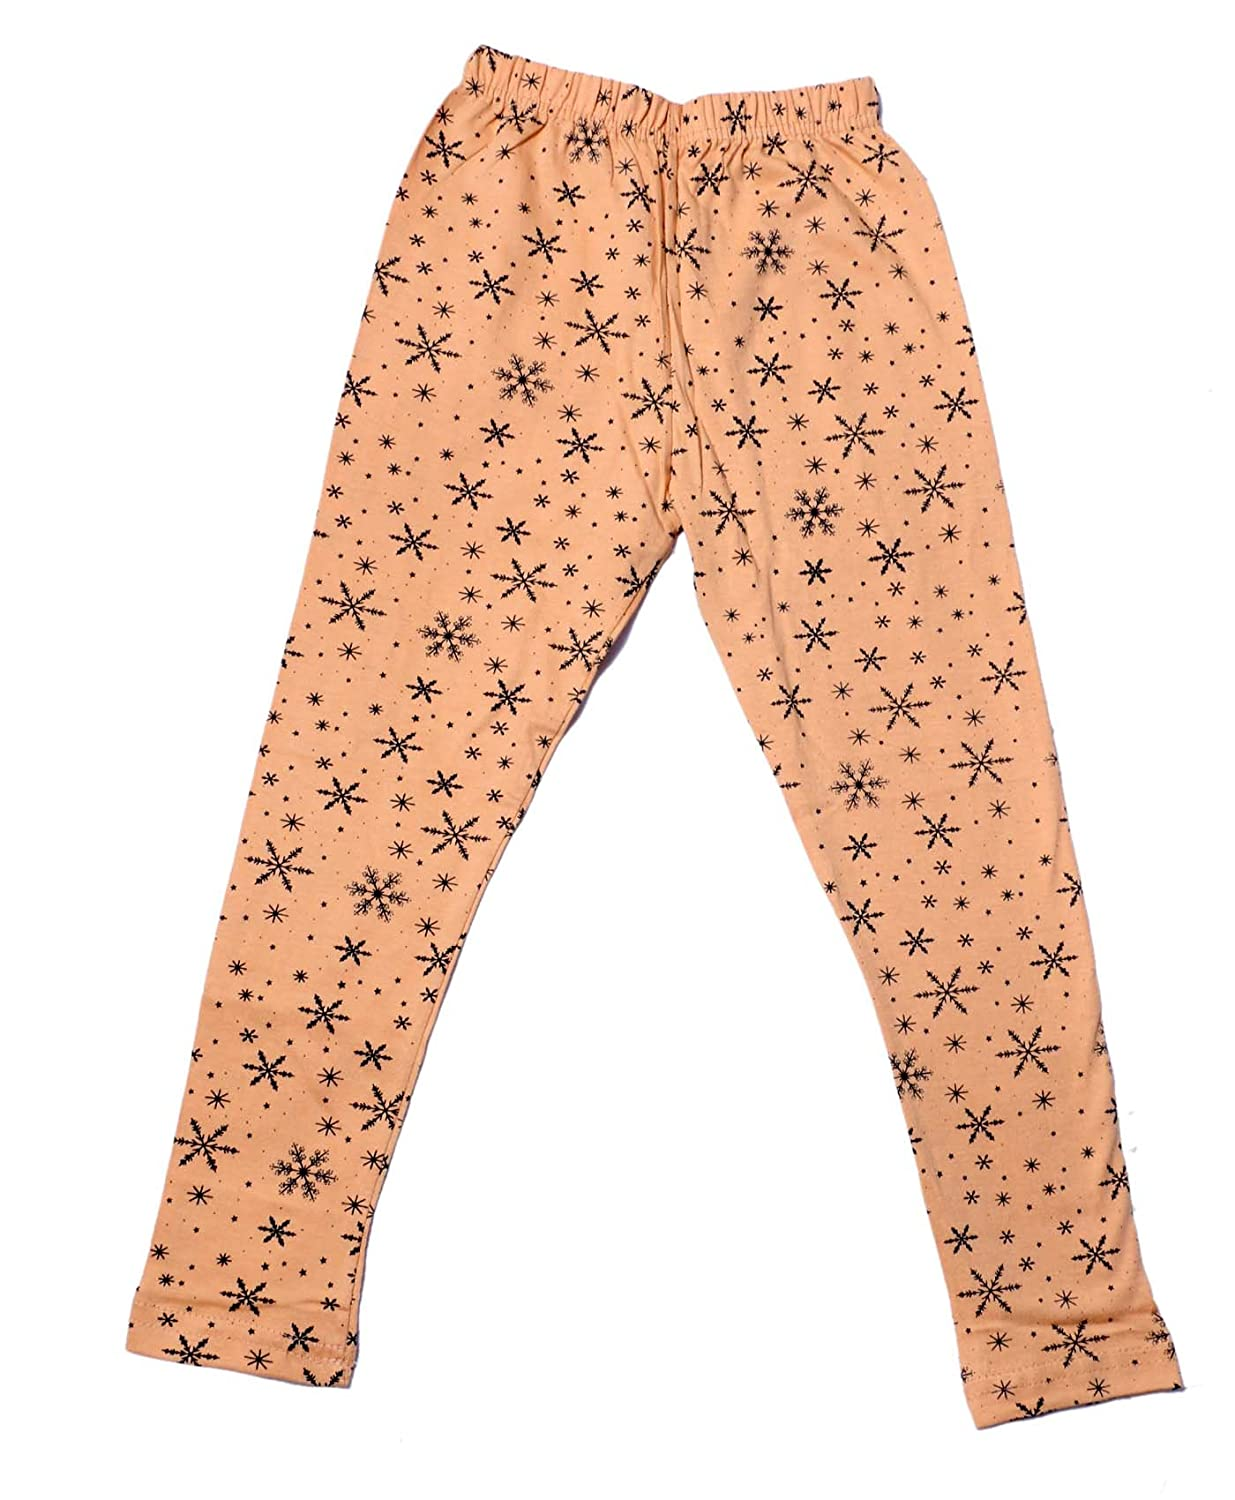 Indistar Girls 2 Cotton Solid Legging Pants /_Multicolor/_Size-11-12 Years/_71413141920-IW-P4-34 Pack Of 4 and 2 Cotton Printed Legging Pants